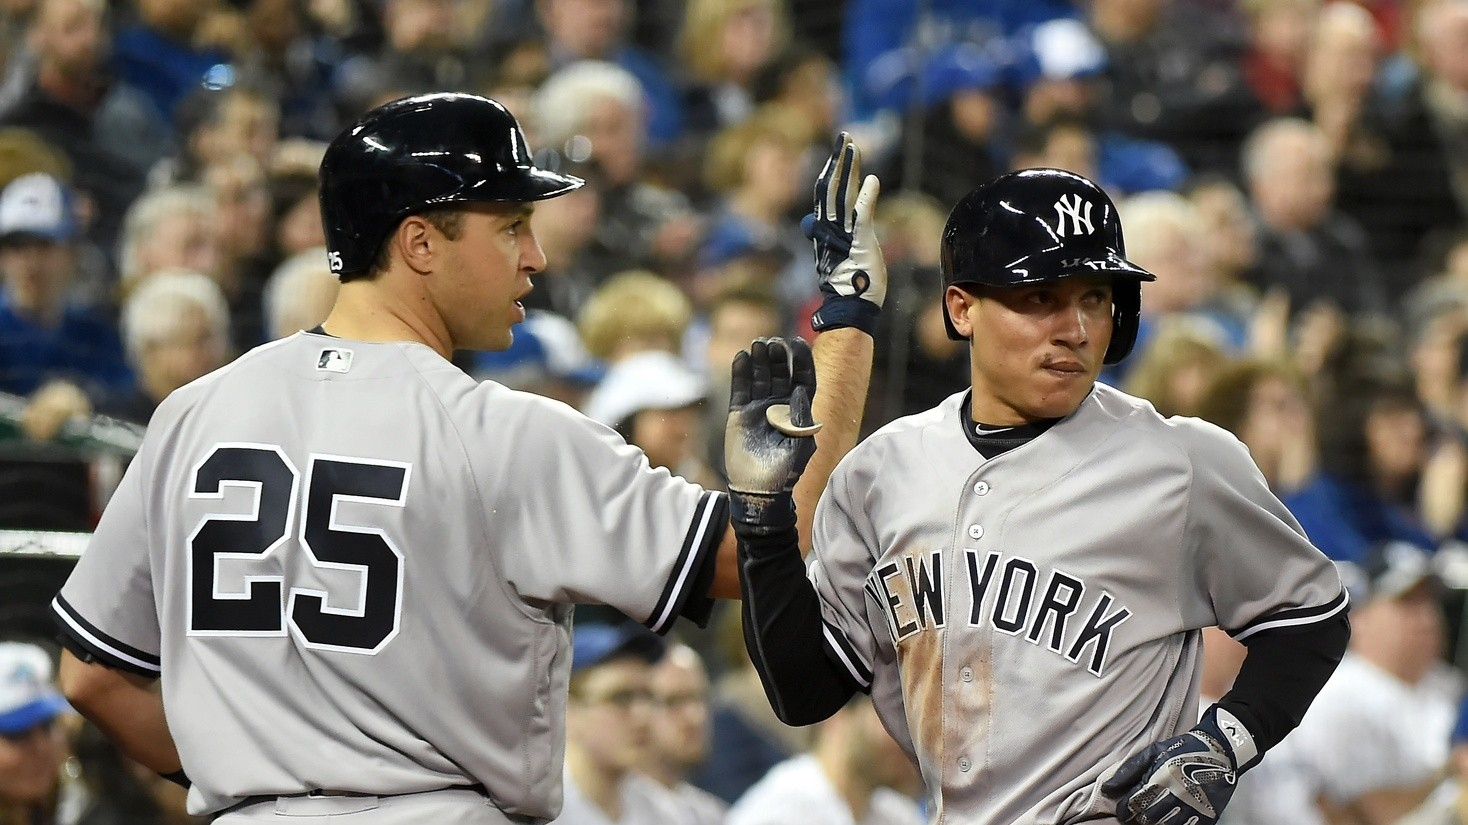 The Yankees Are Losing for All the Old, Familiar Reasons